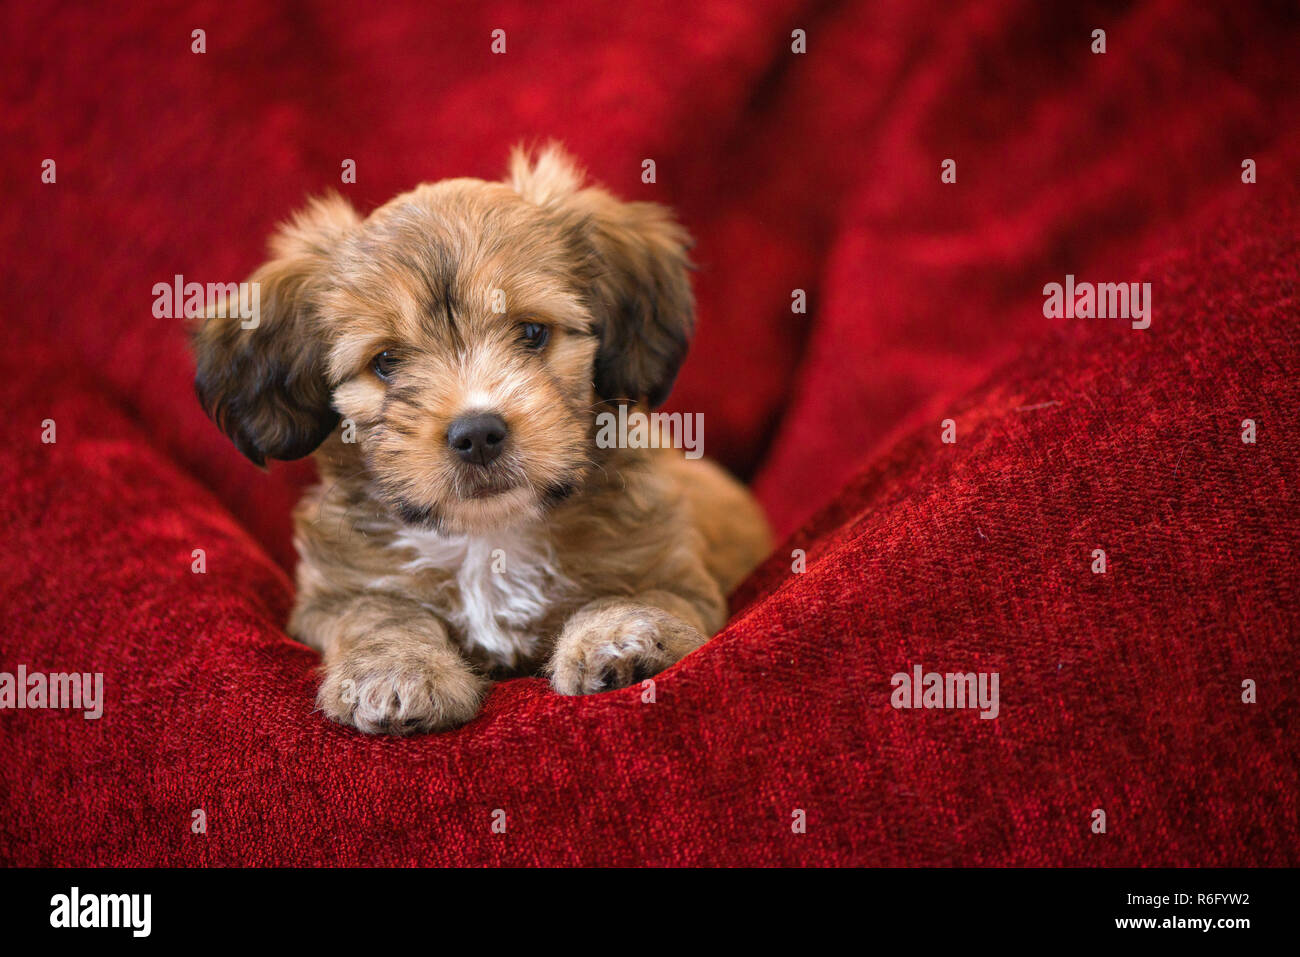 Awe Inspiring Curious Dog Obediently Laying In Big Red Bean Bag Little Cjindustries Chair Design For Home Cjindustriesco